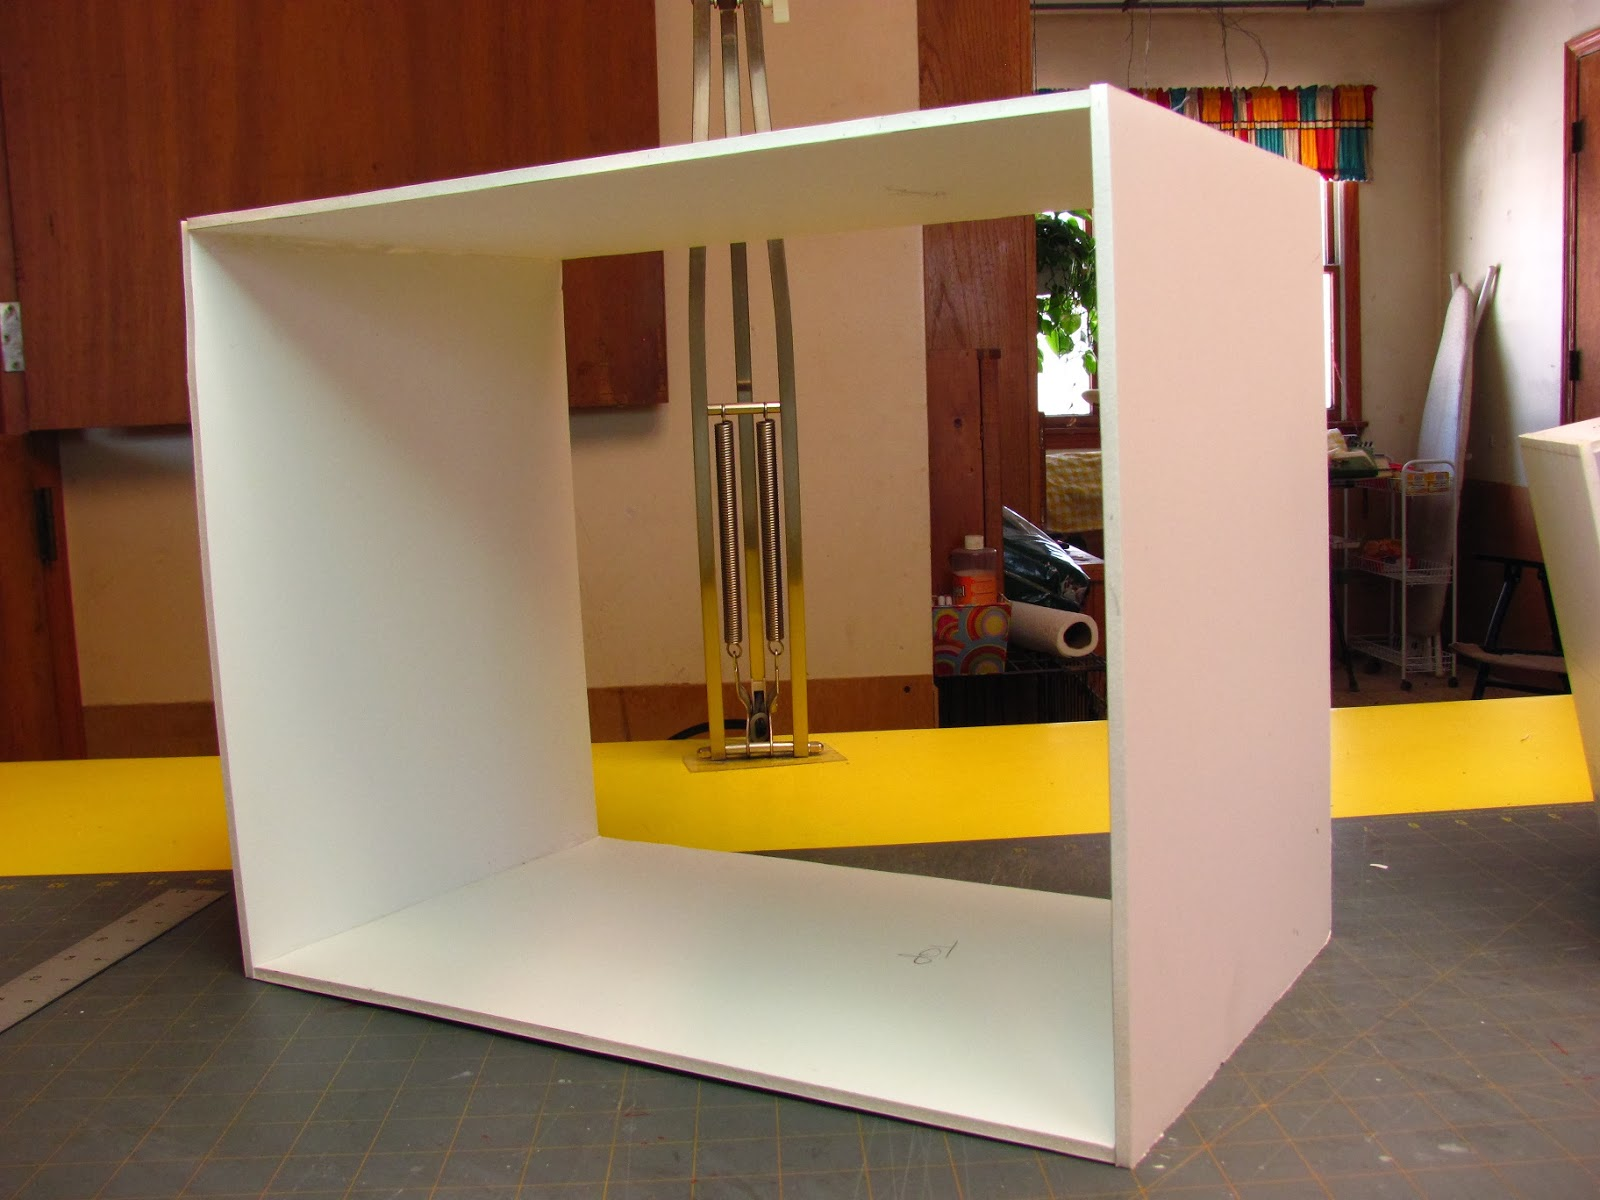 My First Room Toddler 3 Piece Room In A Box: Dollhouse Miniature Furniture - Tutorials